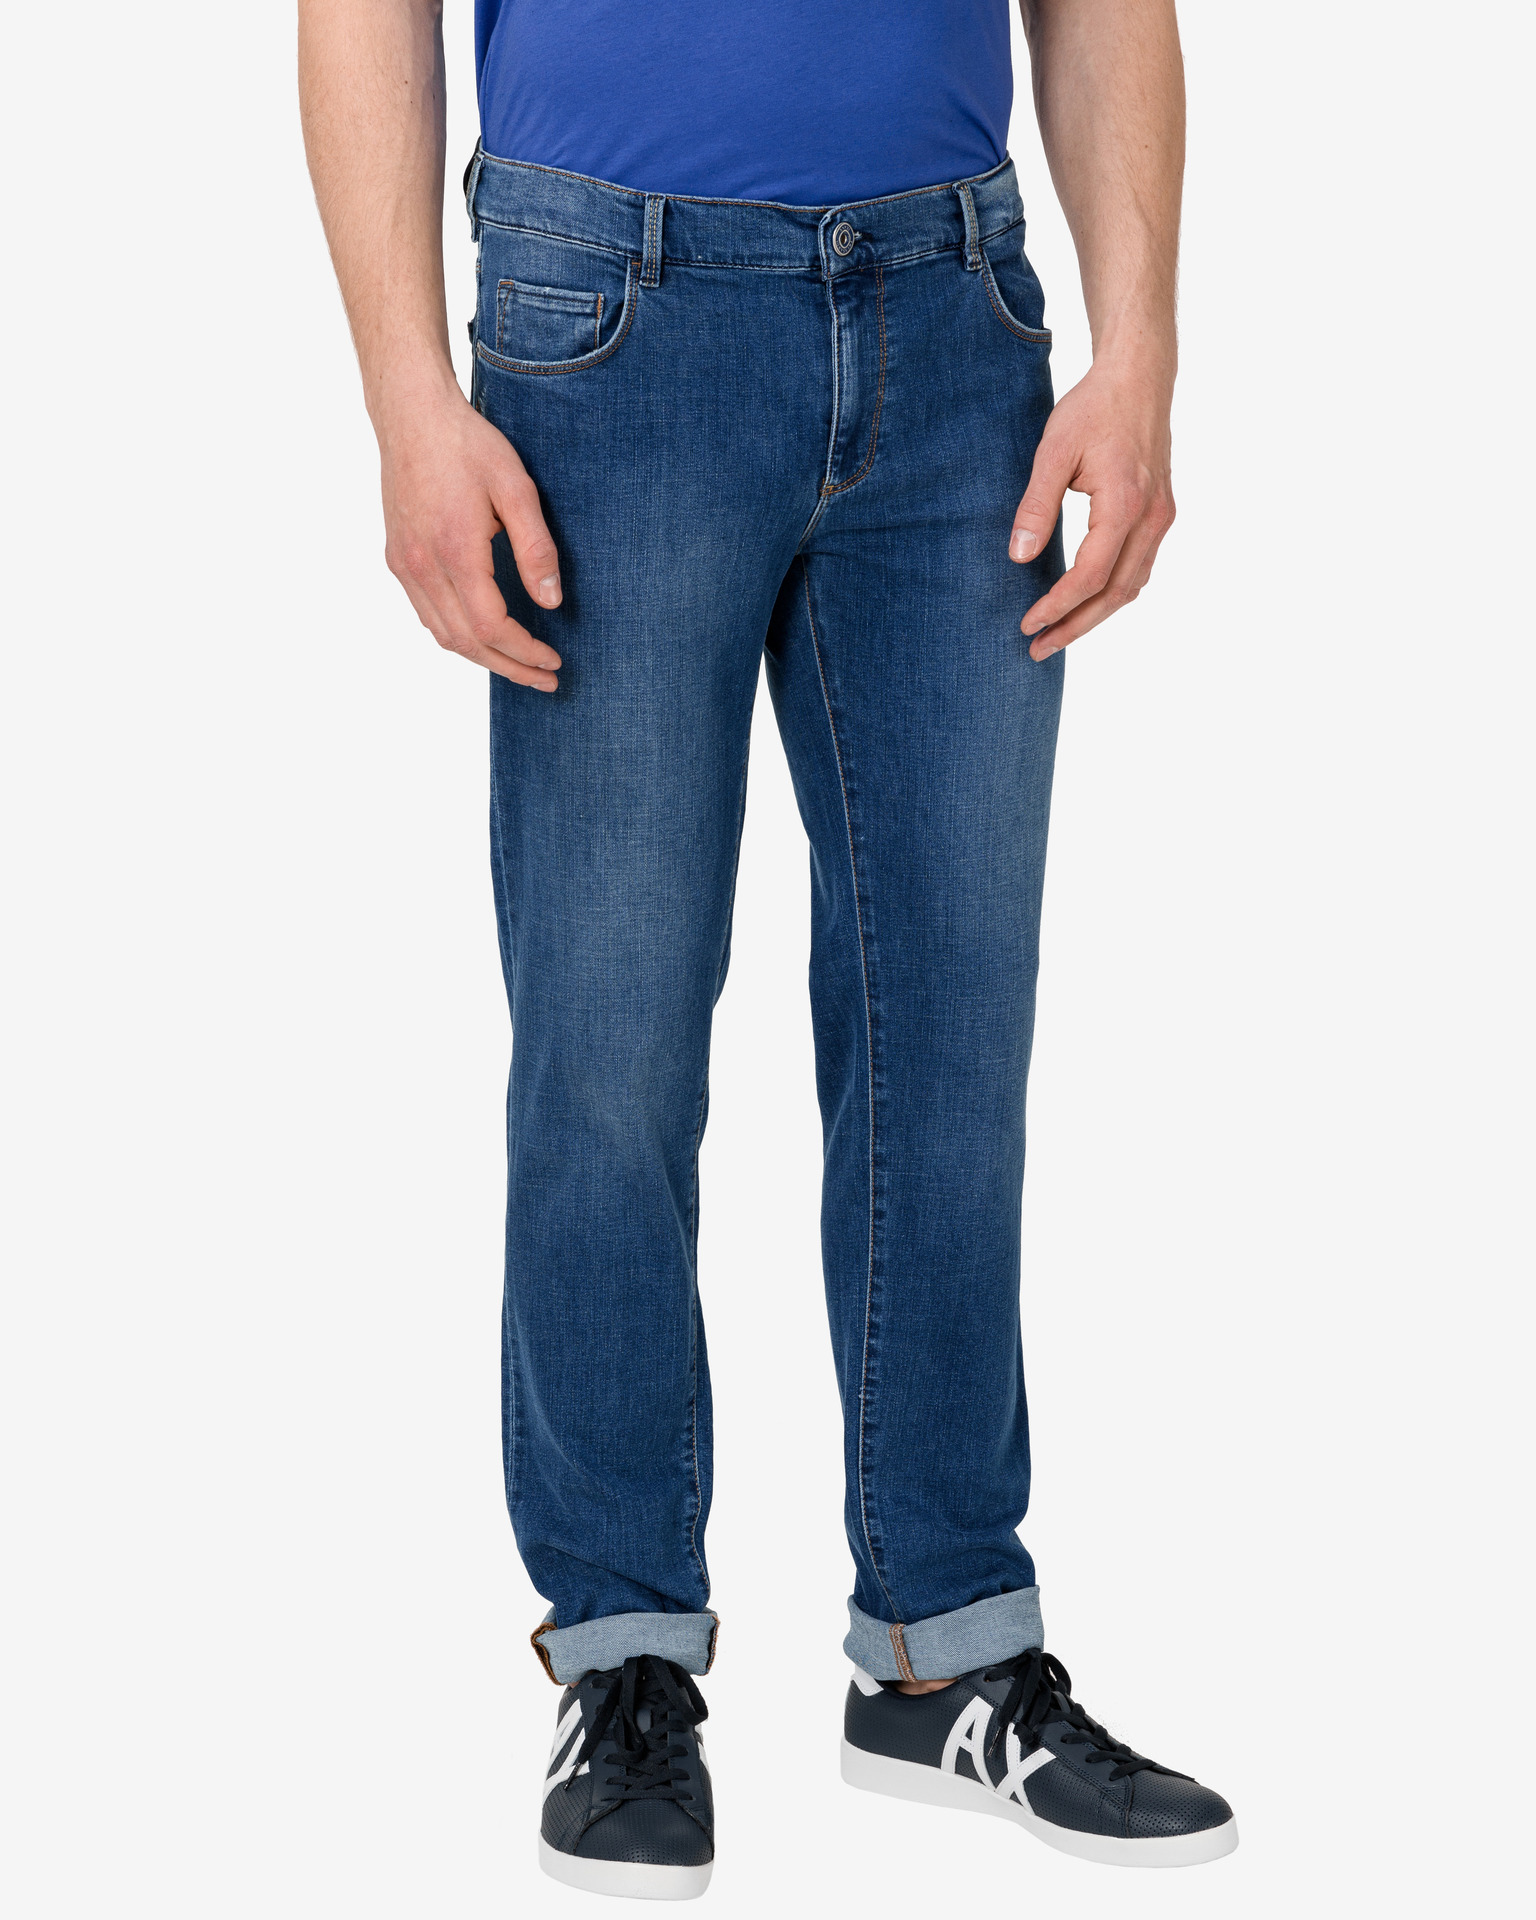 370 Close Jeans Trussardi Jeans